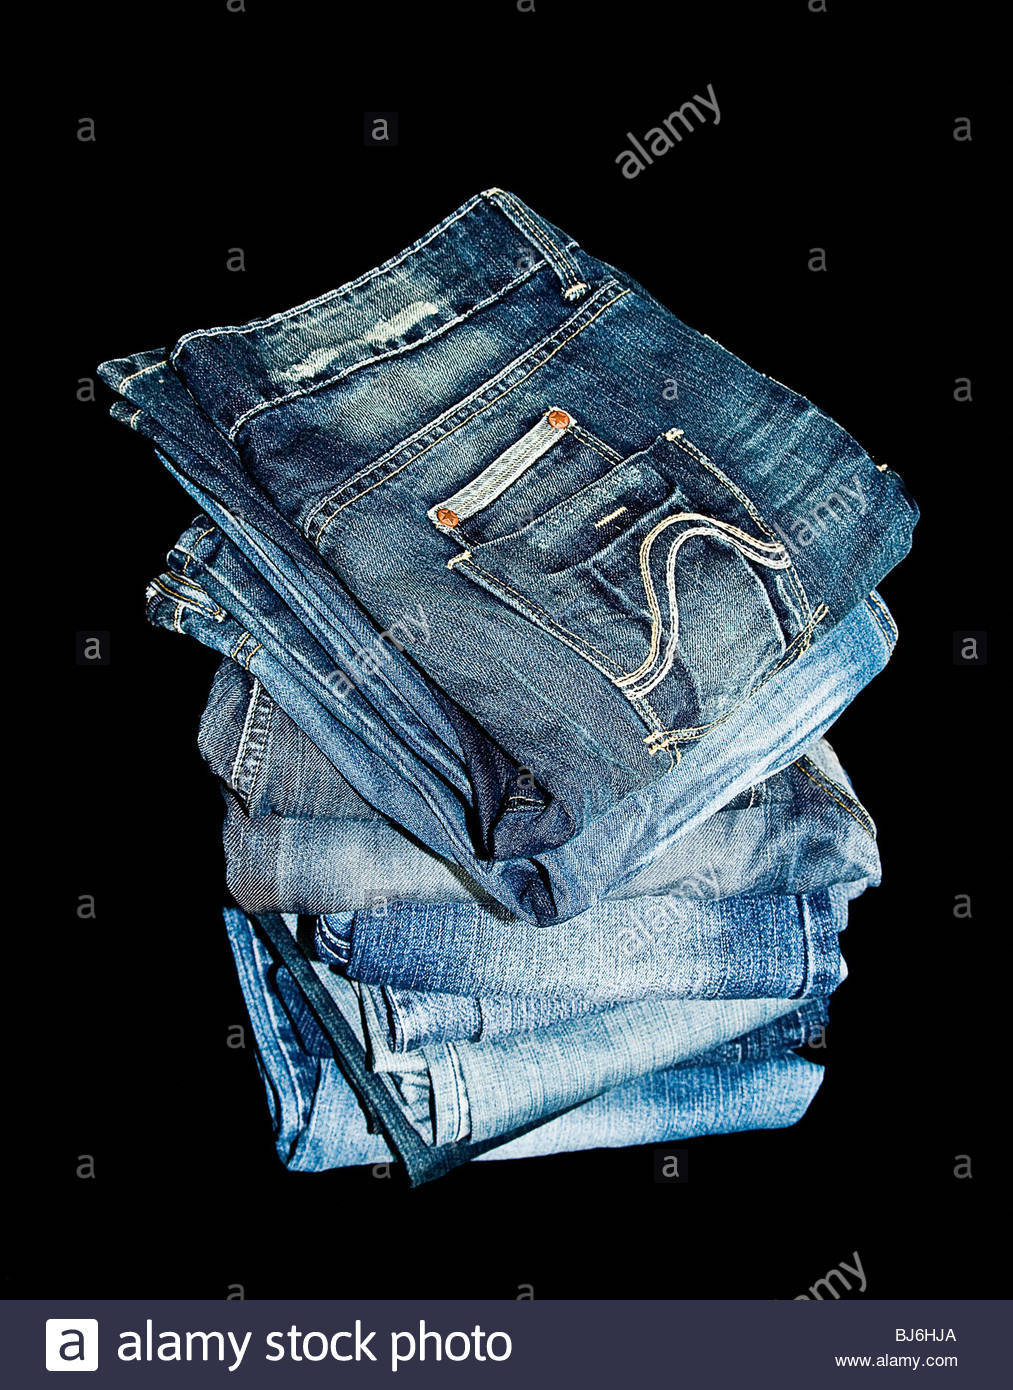 Pile de jeans bleu Photo Stock